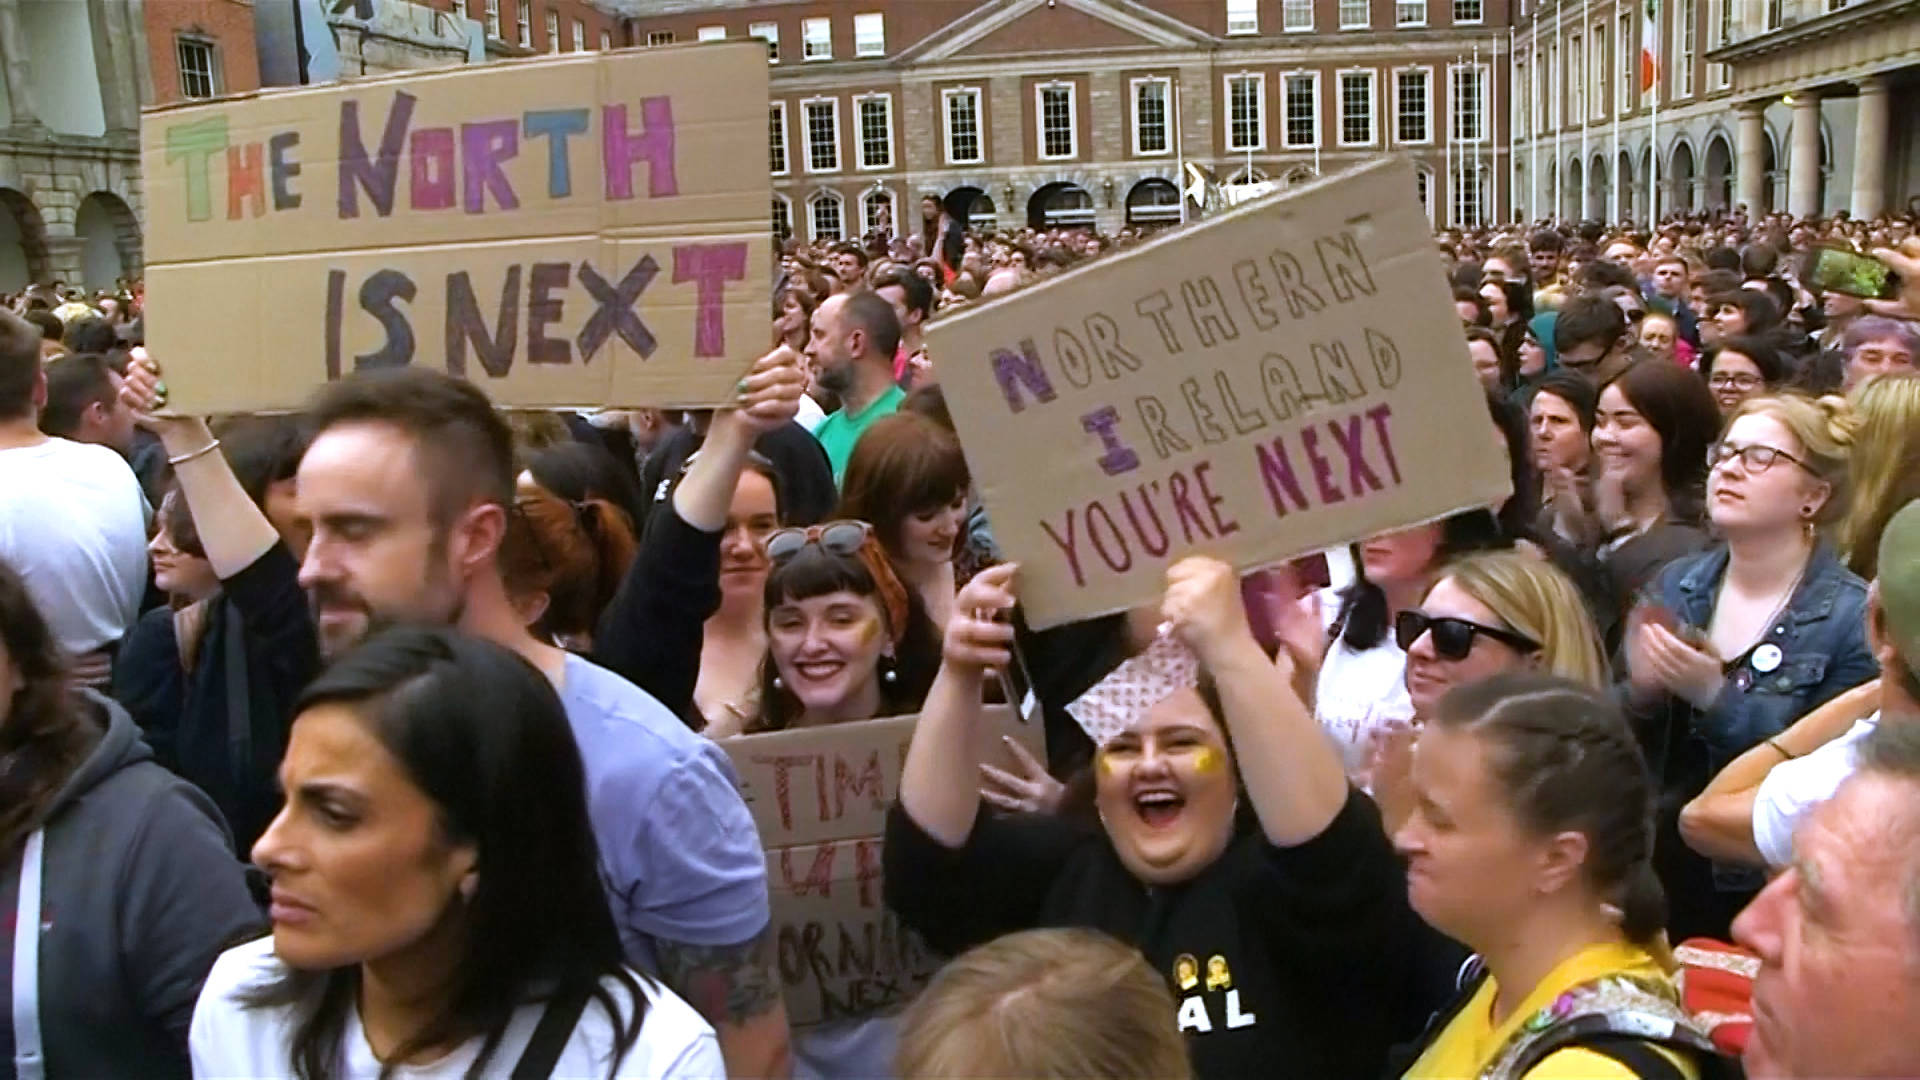 After Ireland's Historic Abortion Vote, Calls Grow for Abortion Rights in Nort...